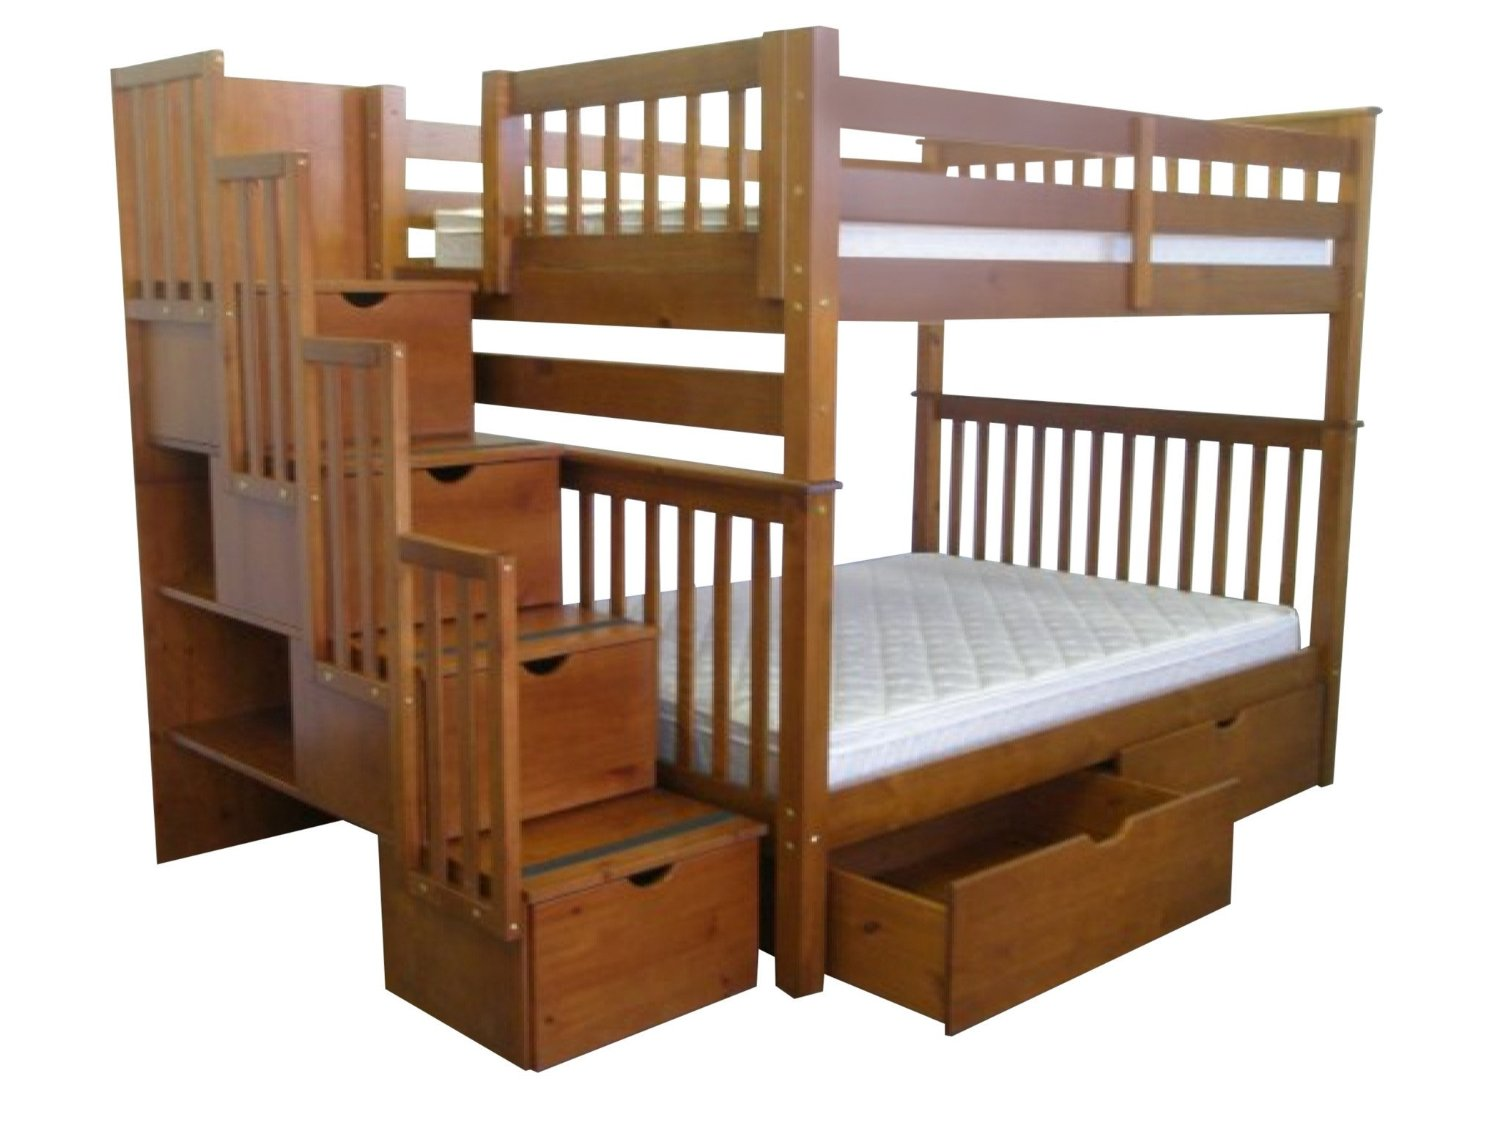 Cheap King Bed With Drawers Underneath Find King Bed With Drawers